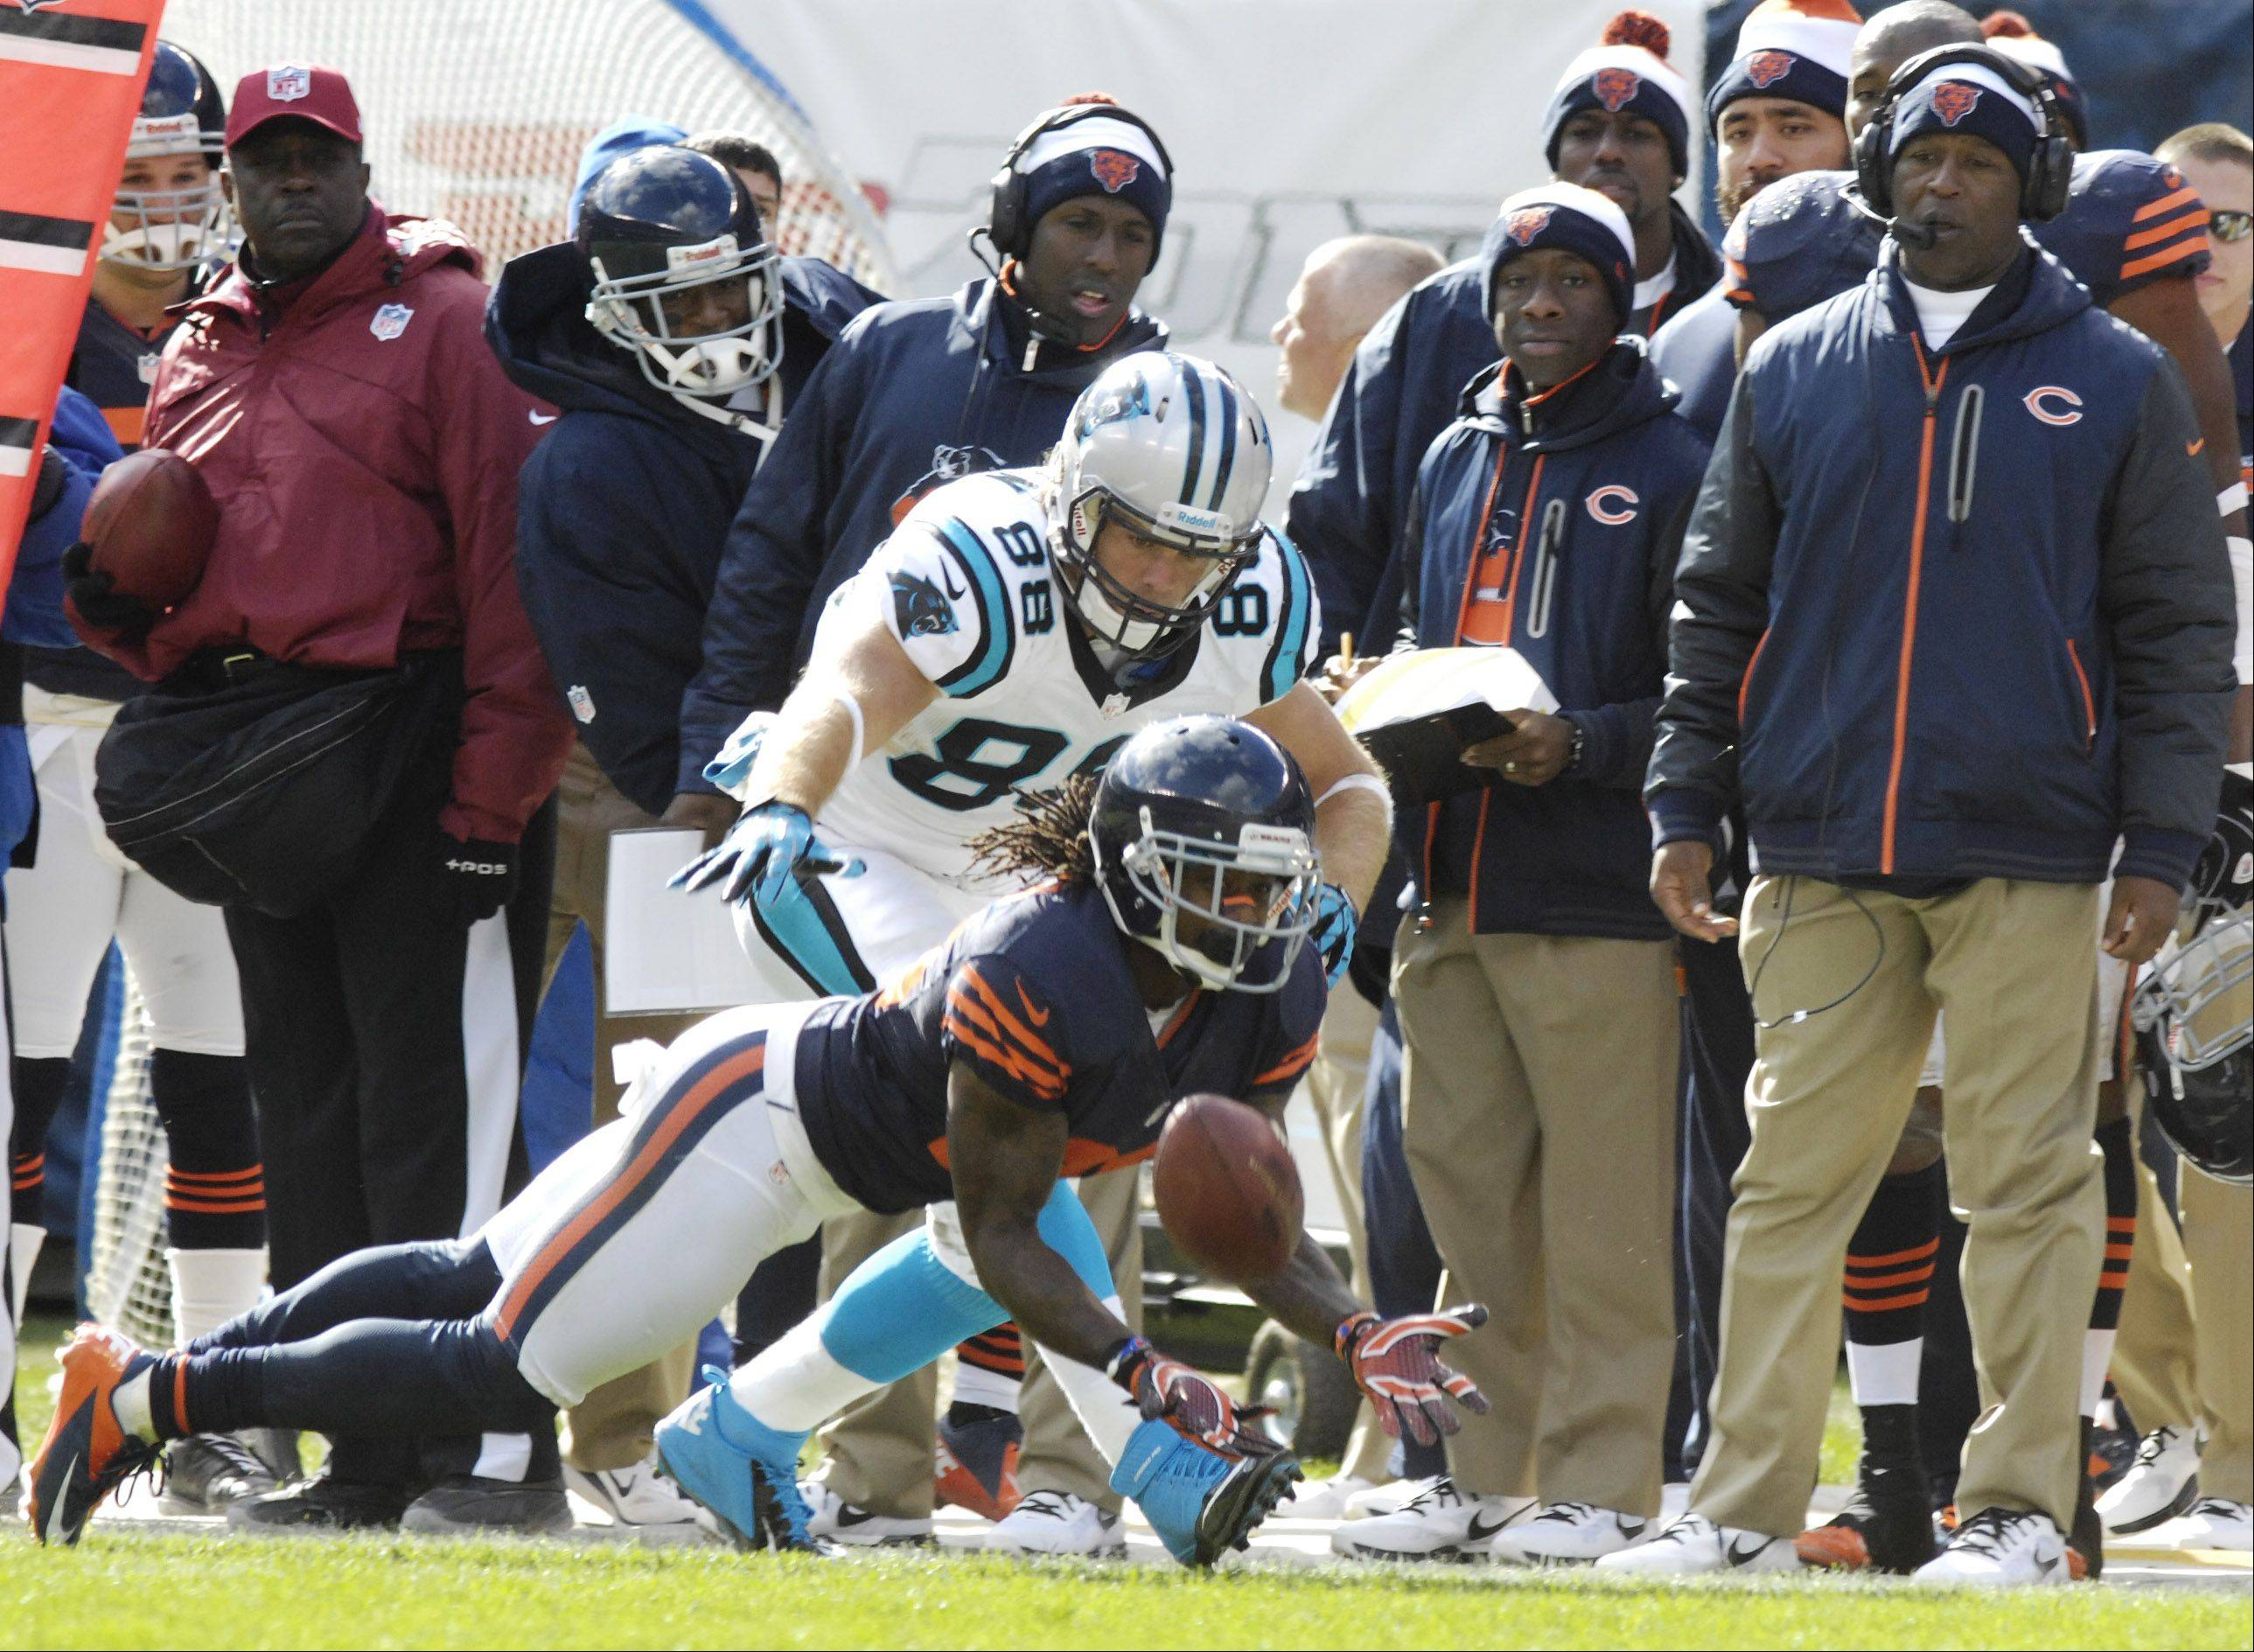 Chicago Bears cornerback Tim Jennings makes a second-quarter interception in front of Carolina Panthers tight end Greg Olsen during Sunday's game at Soldier Field.